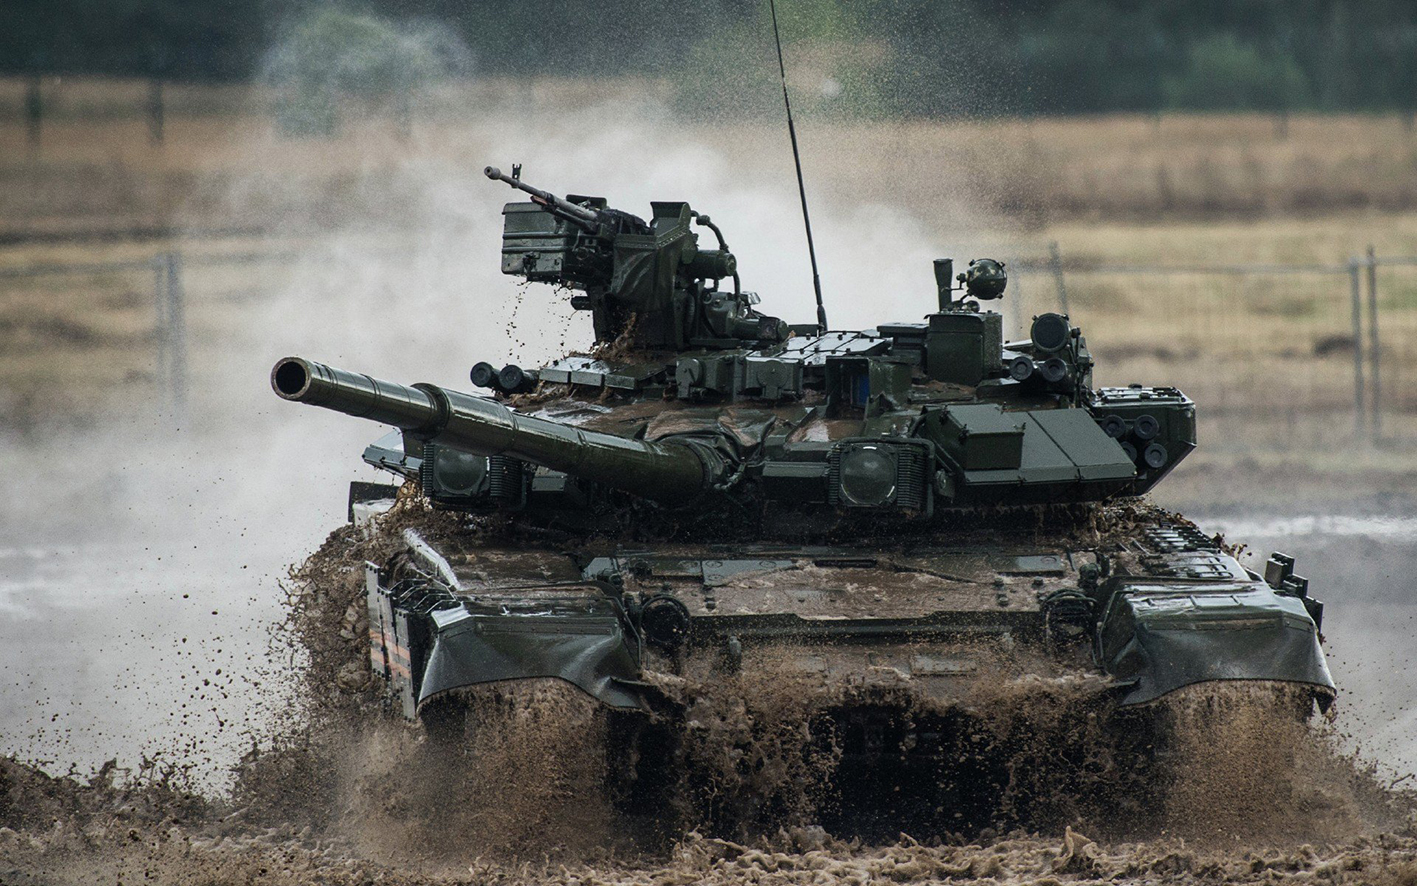 A T-90 main battle tank.